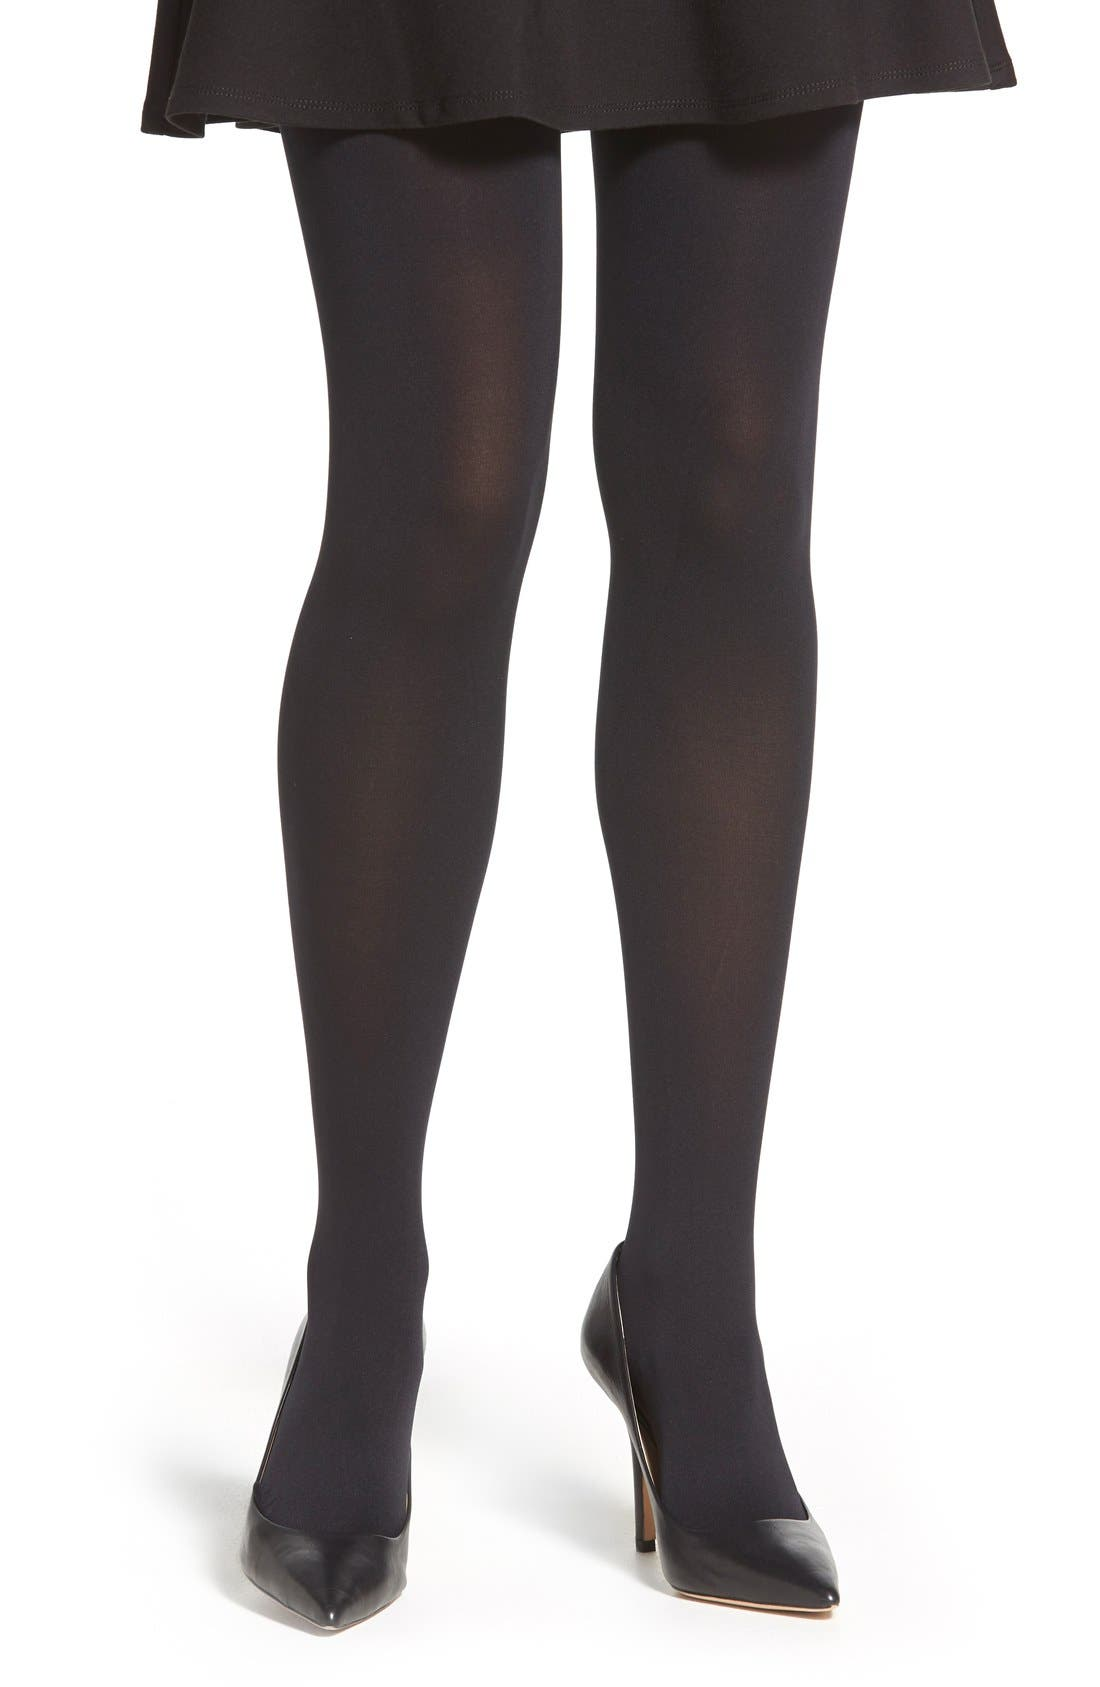 Main Image - Pretty Polly 'Legs on the Go' Tights